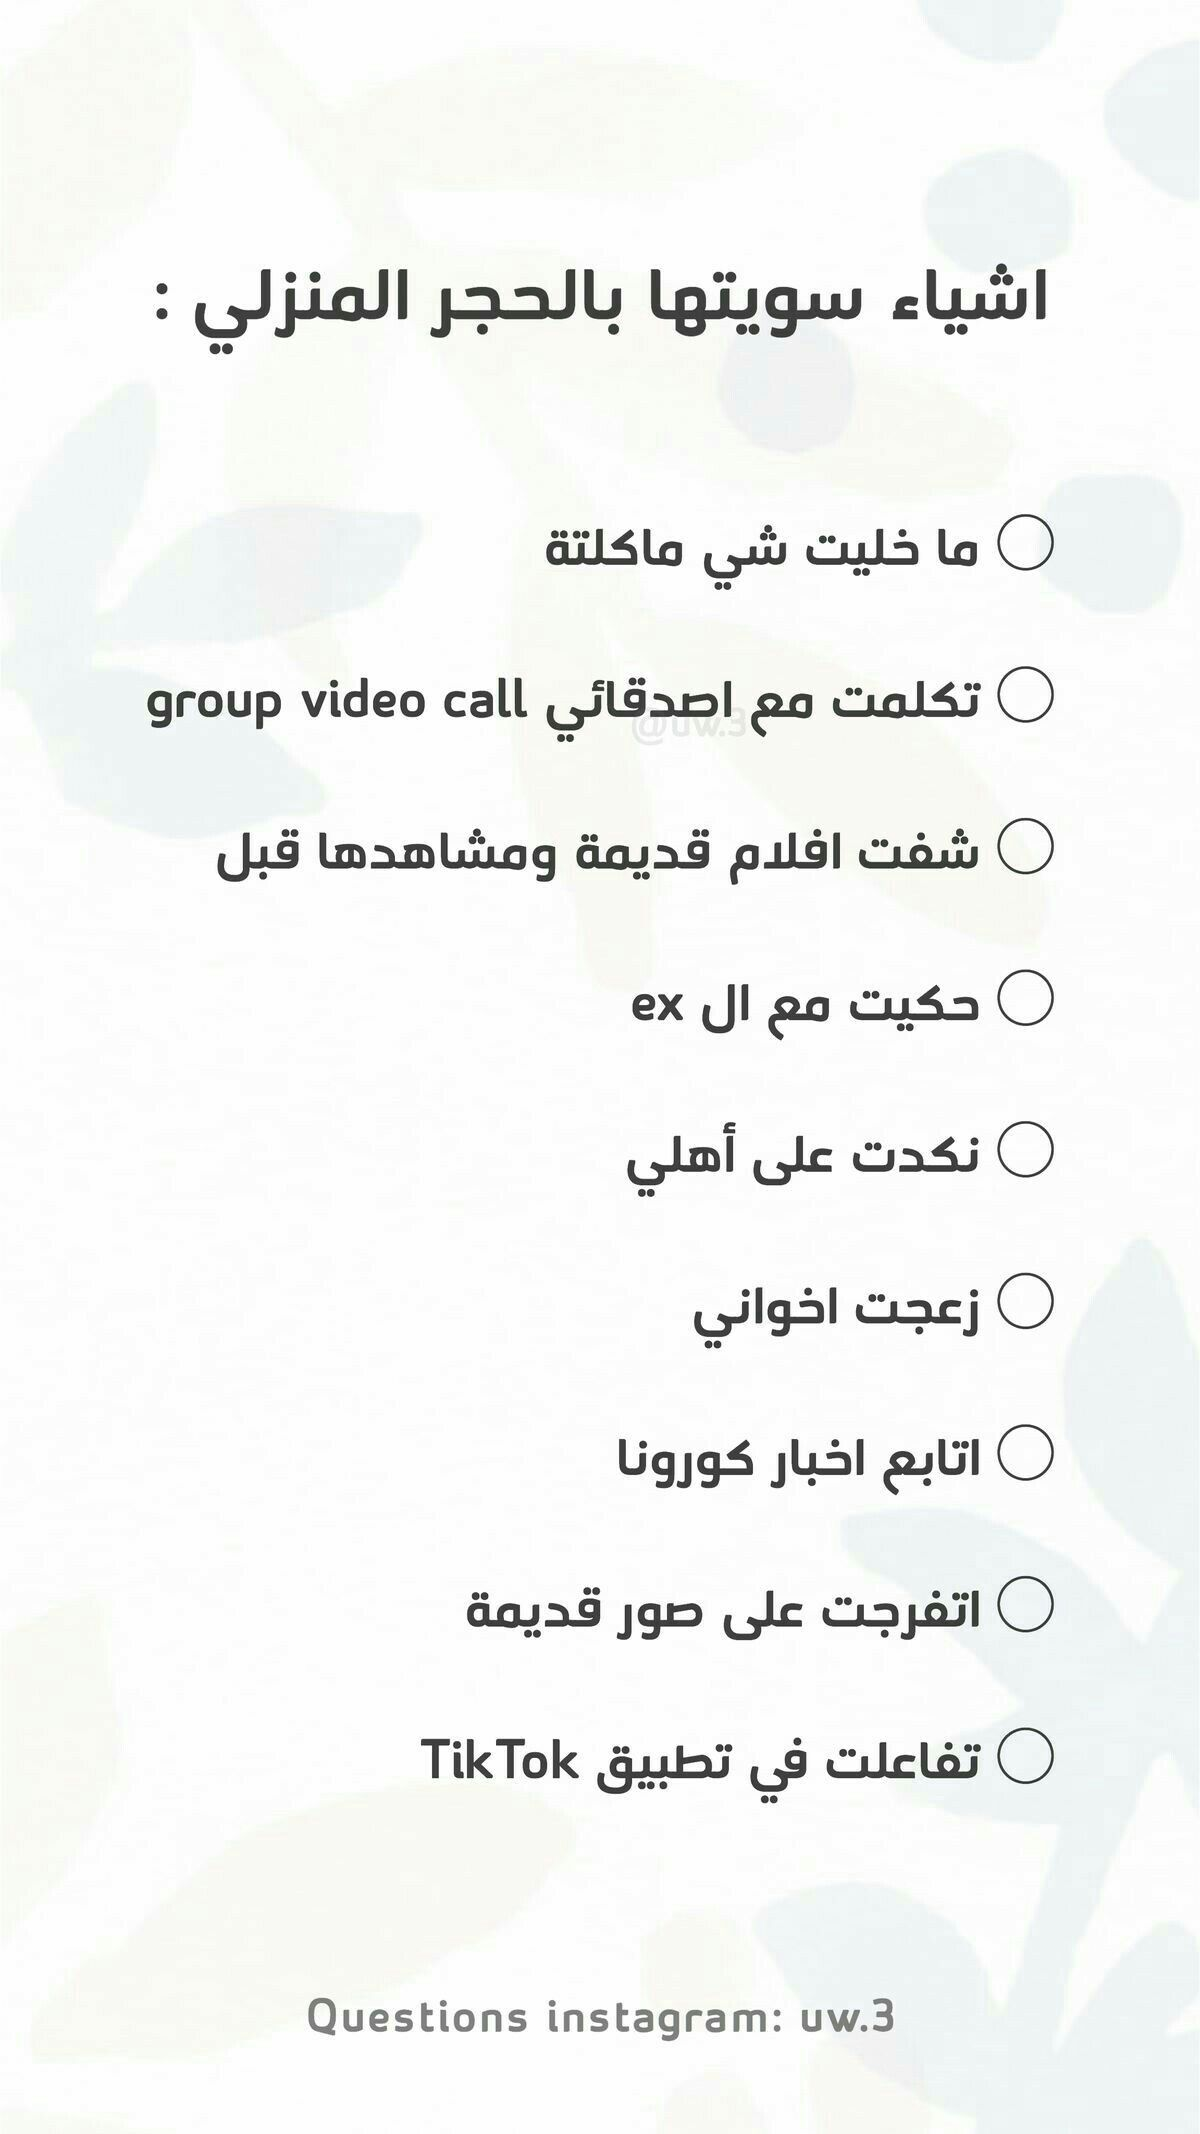 Pin By On ليه مكشر Instagram Questions This Or That Questions Instagram Quotes Captions